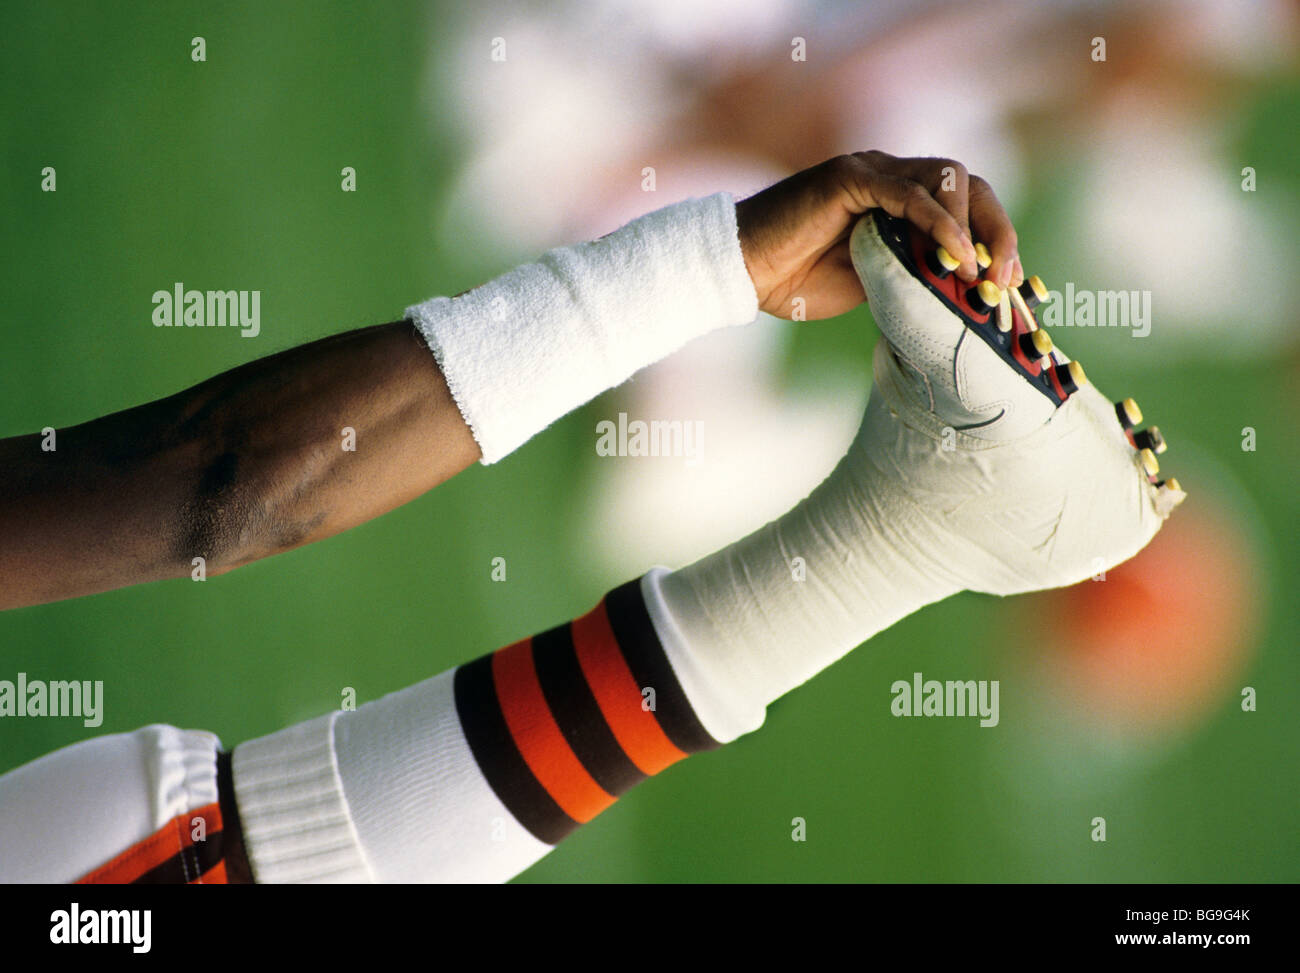 American football player stretches out his taped ankle before a game - Stock Image